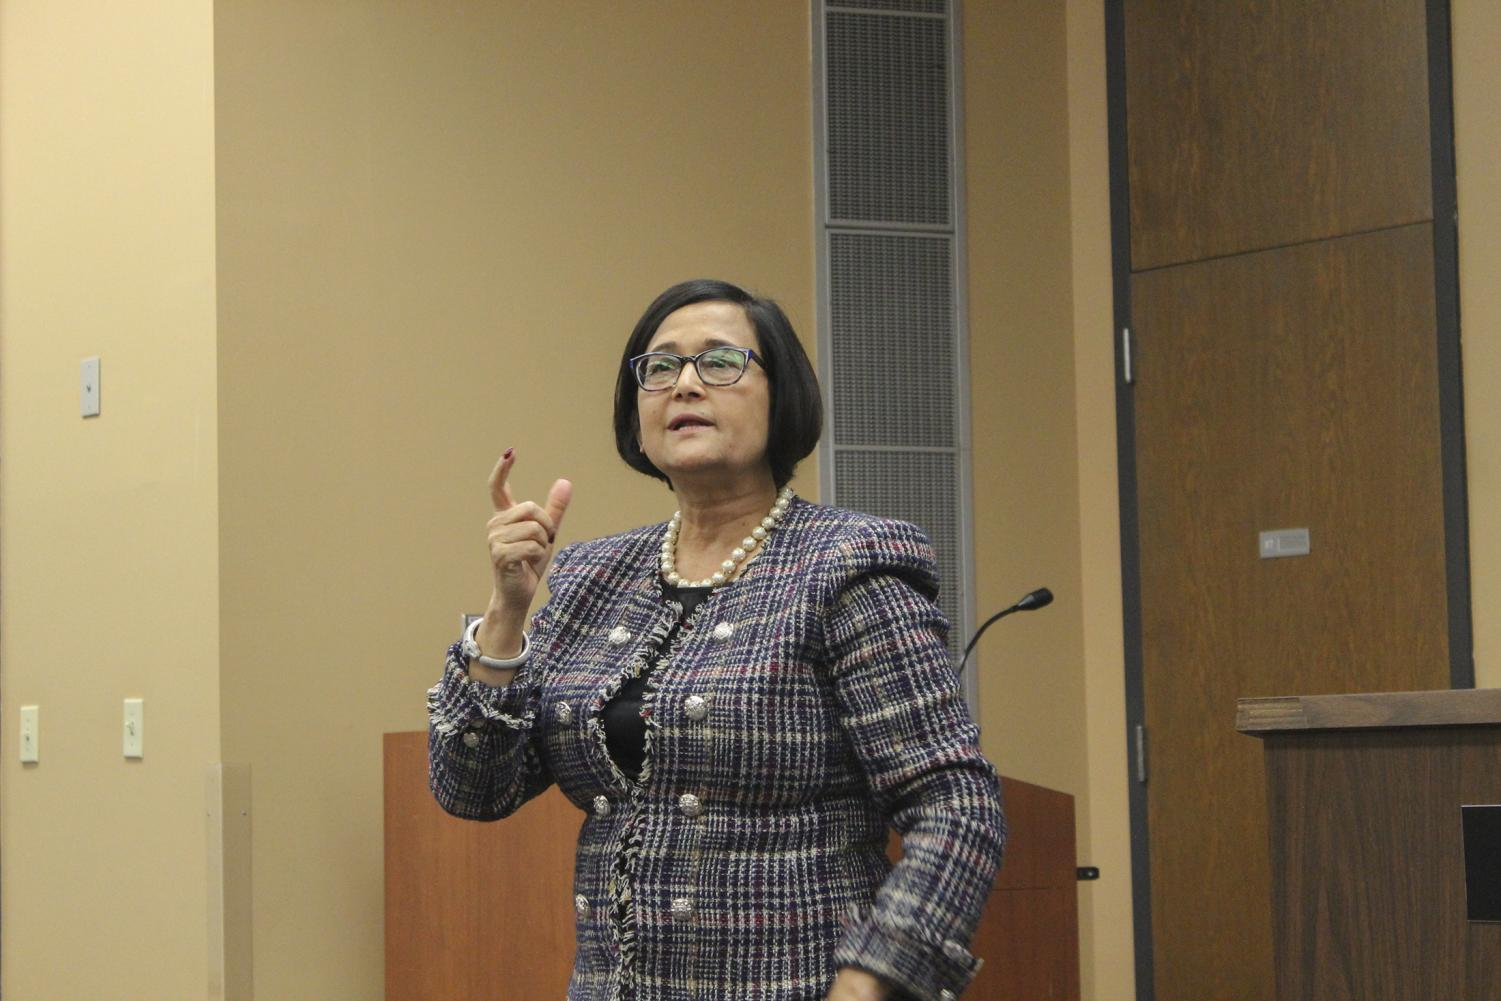 Tanuja Singh, Loyola's next provost, speaks to Loyola faculty about her vision for the university on Nov. 19. Photo credit: Cristian Orellana